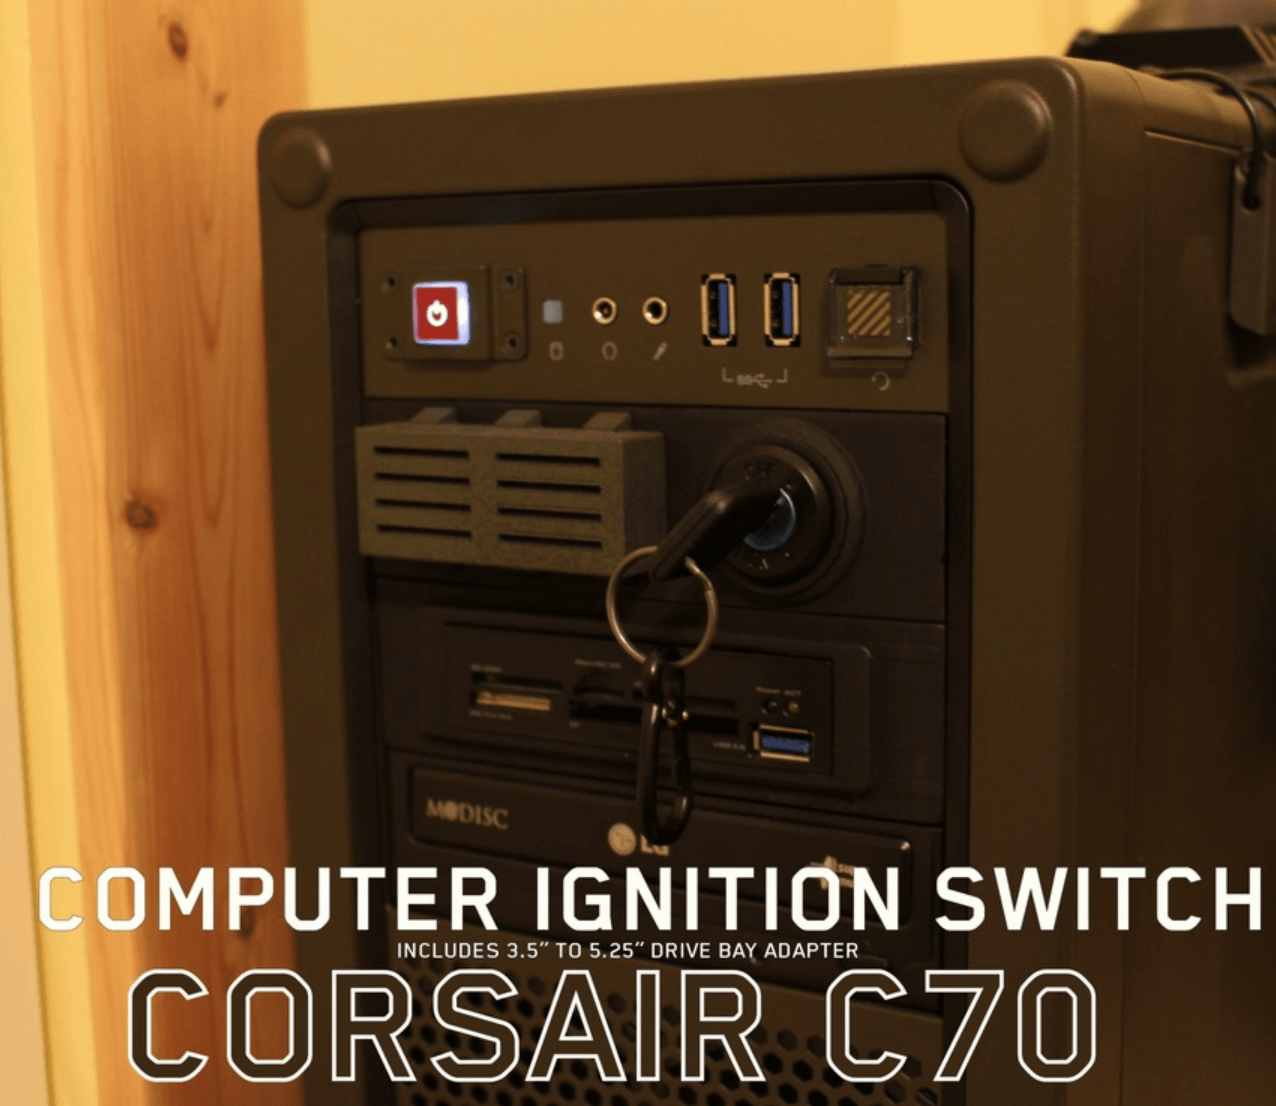 Capture d'écran 2018-04-09 à 14.15.15.png Download free STL file Corsair C70 Ignition Key • Object to 3D print, DragonflyFabrication